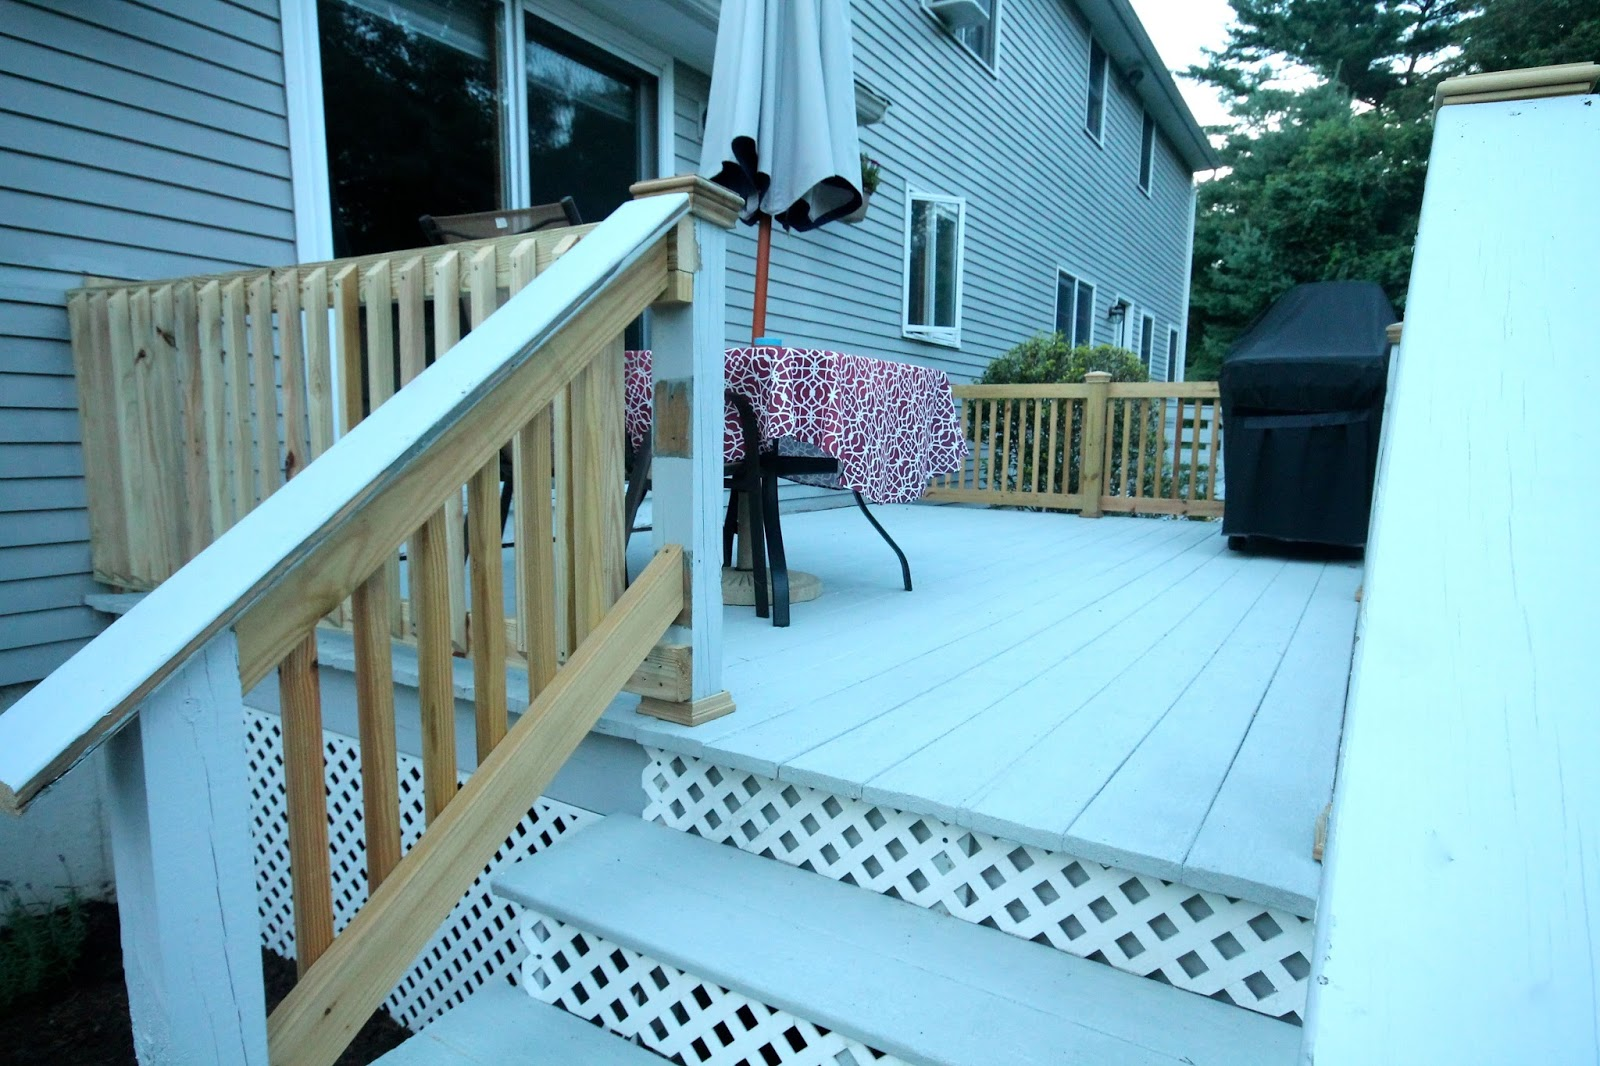 Jemstaa rustoleum deck restore project and review rustoleum deck restore project and review baanklon Choice Image